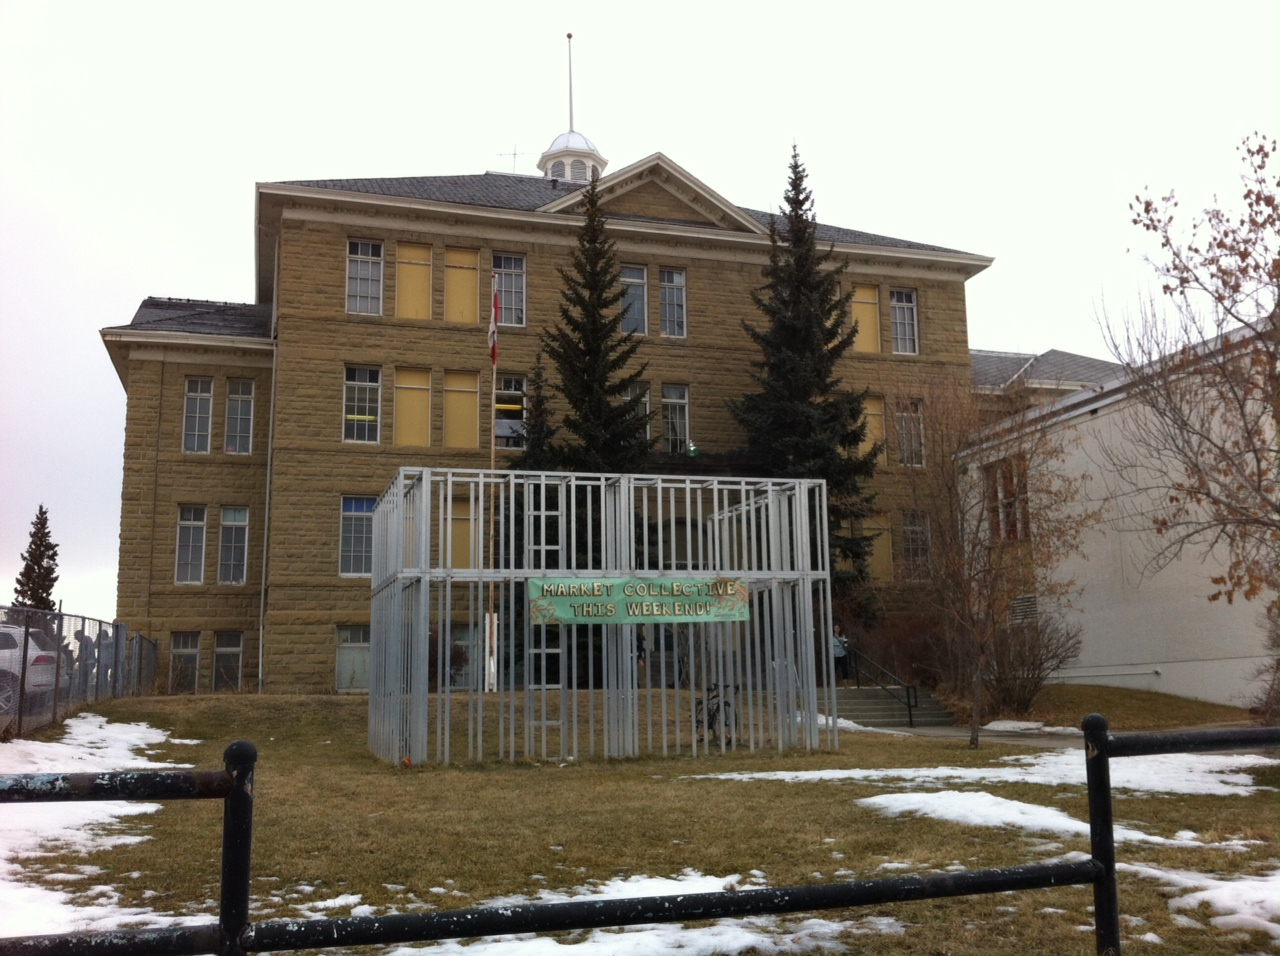 The King Edward School today with its grand entrance blocked by an art installation and the big box addition on the right side. The school sits on a high point in the middle of the block creating a sense of authority, a common characteristic of early 20th century schools. The schools were the dominant building in most new communities.